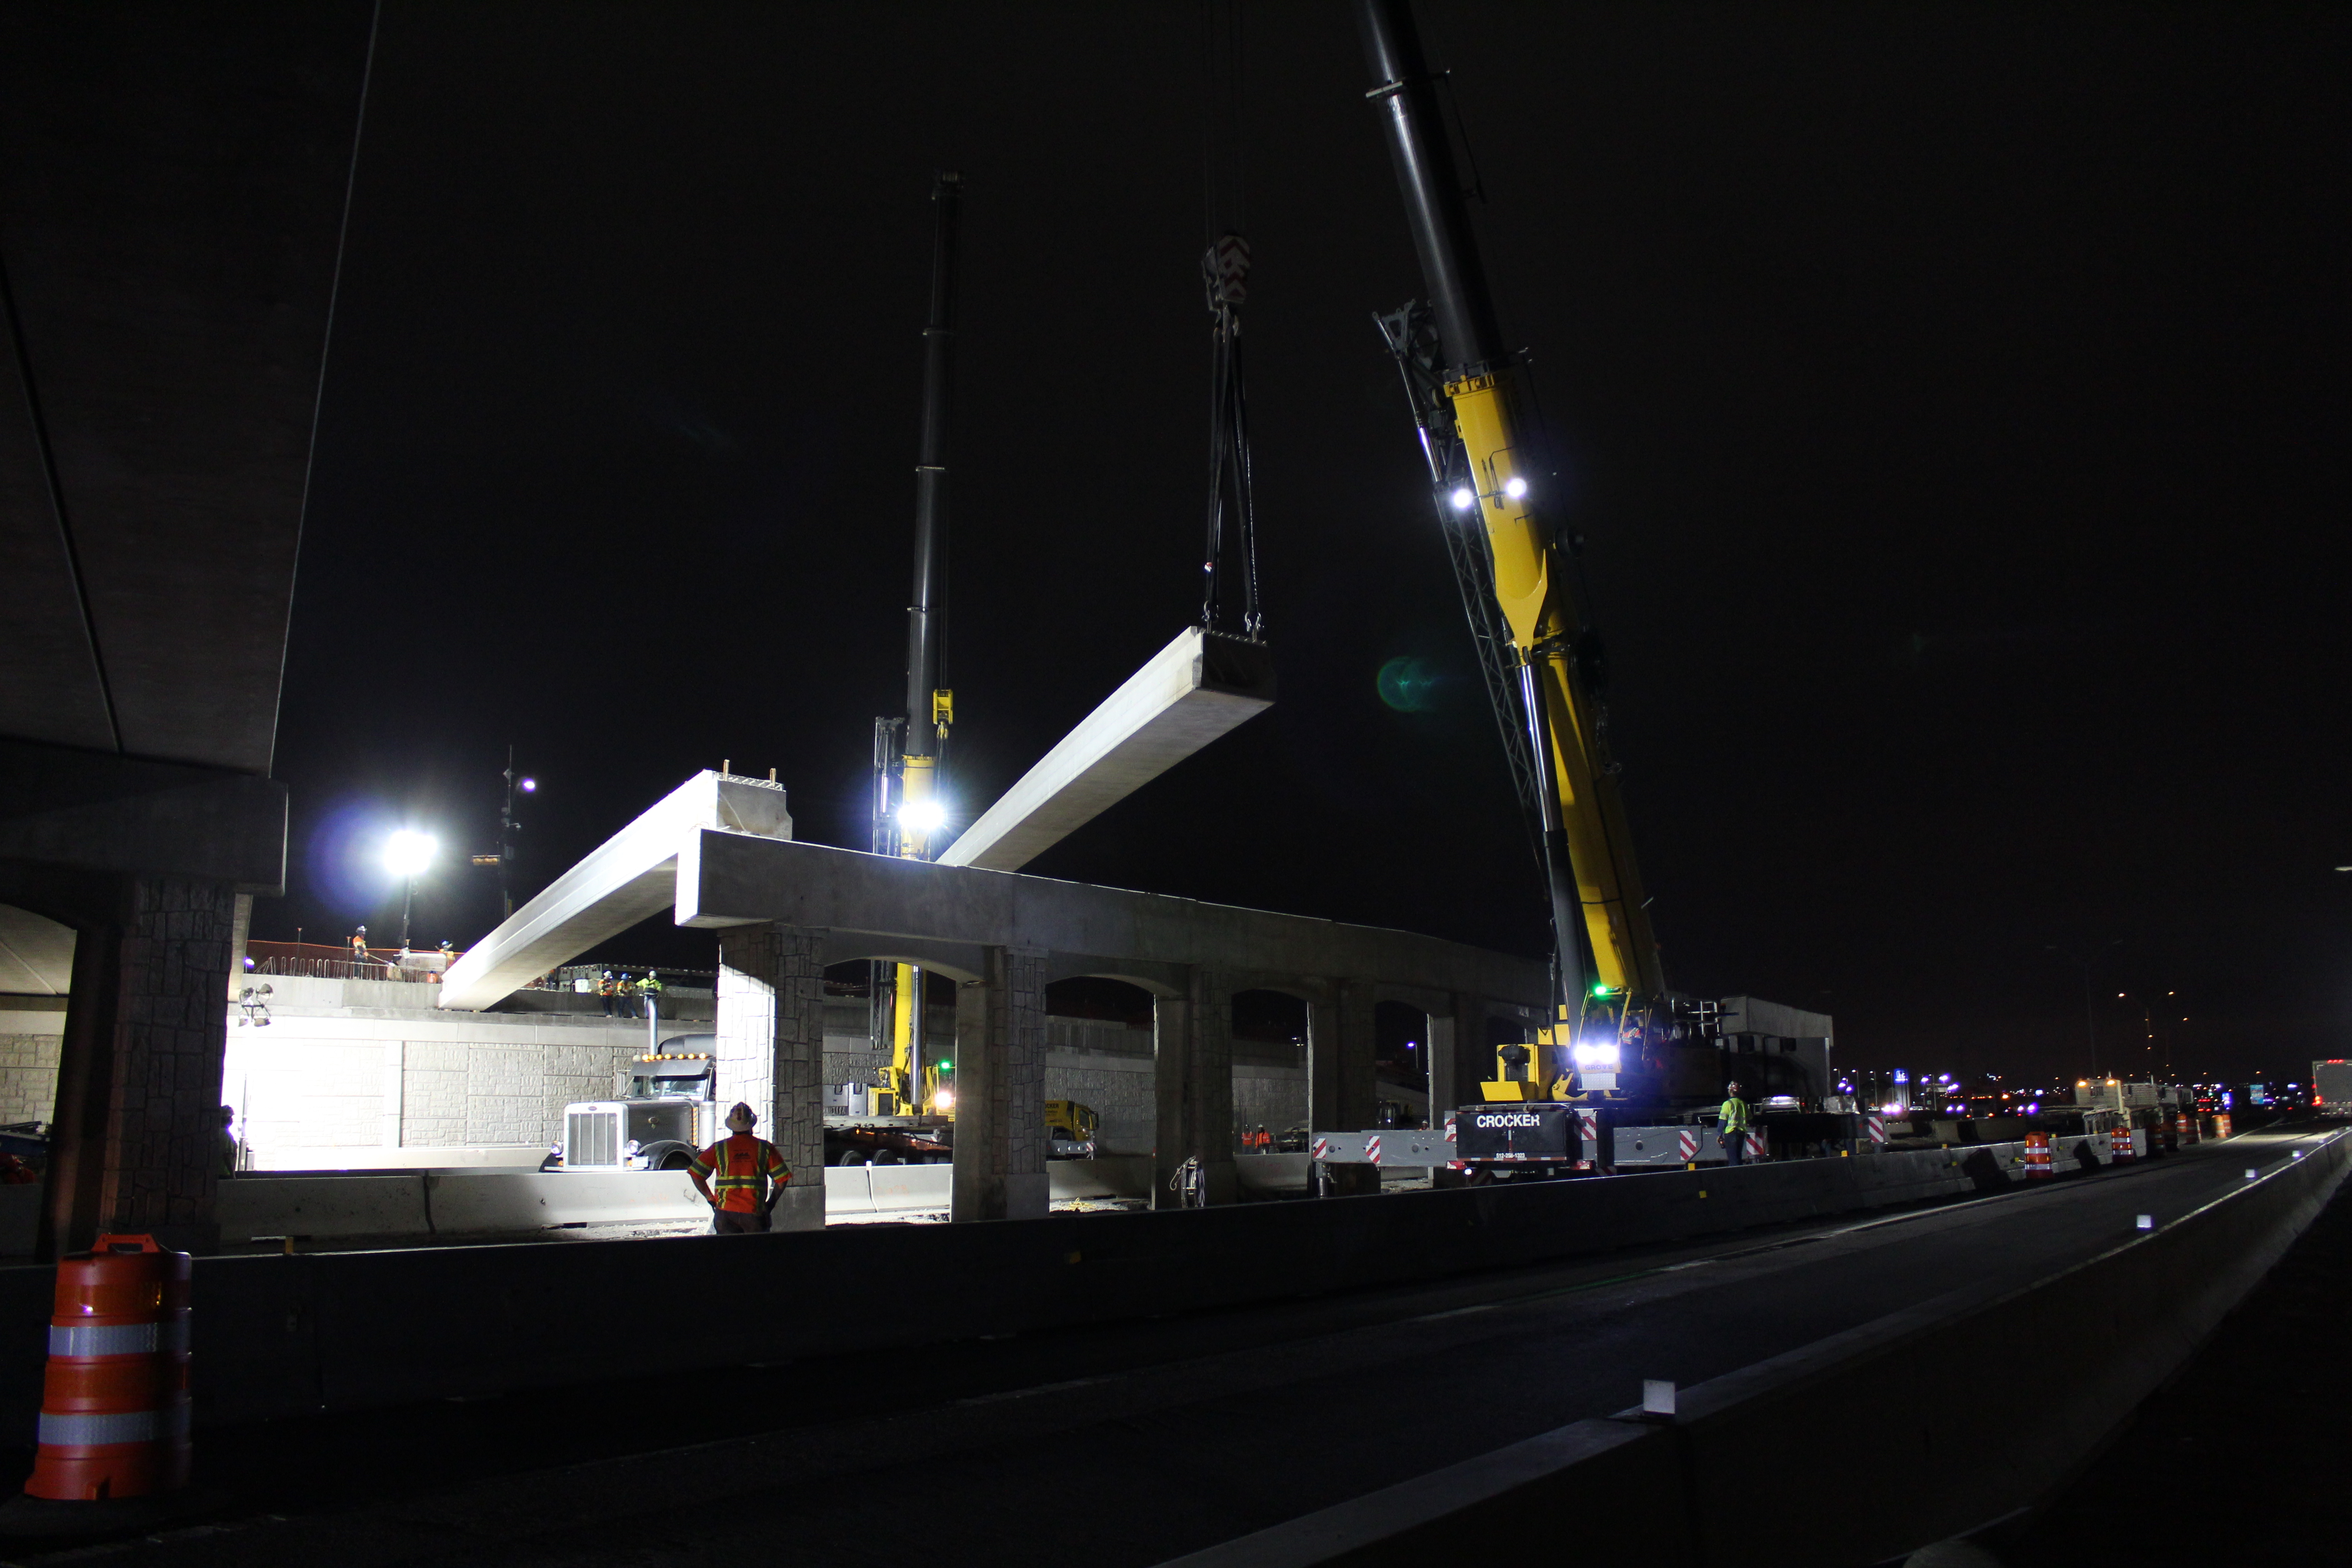 Beam setting done at night, while I-35 is less active.